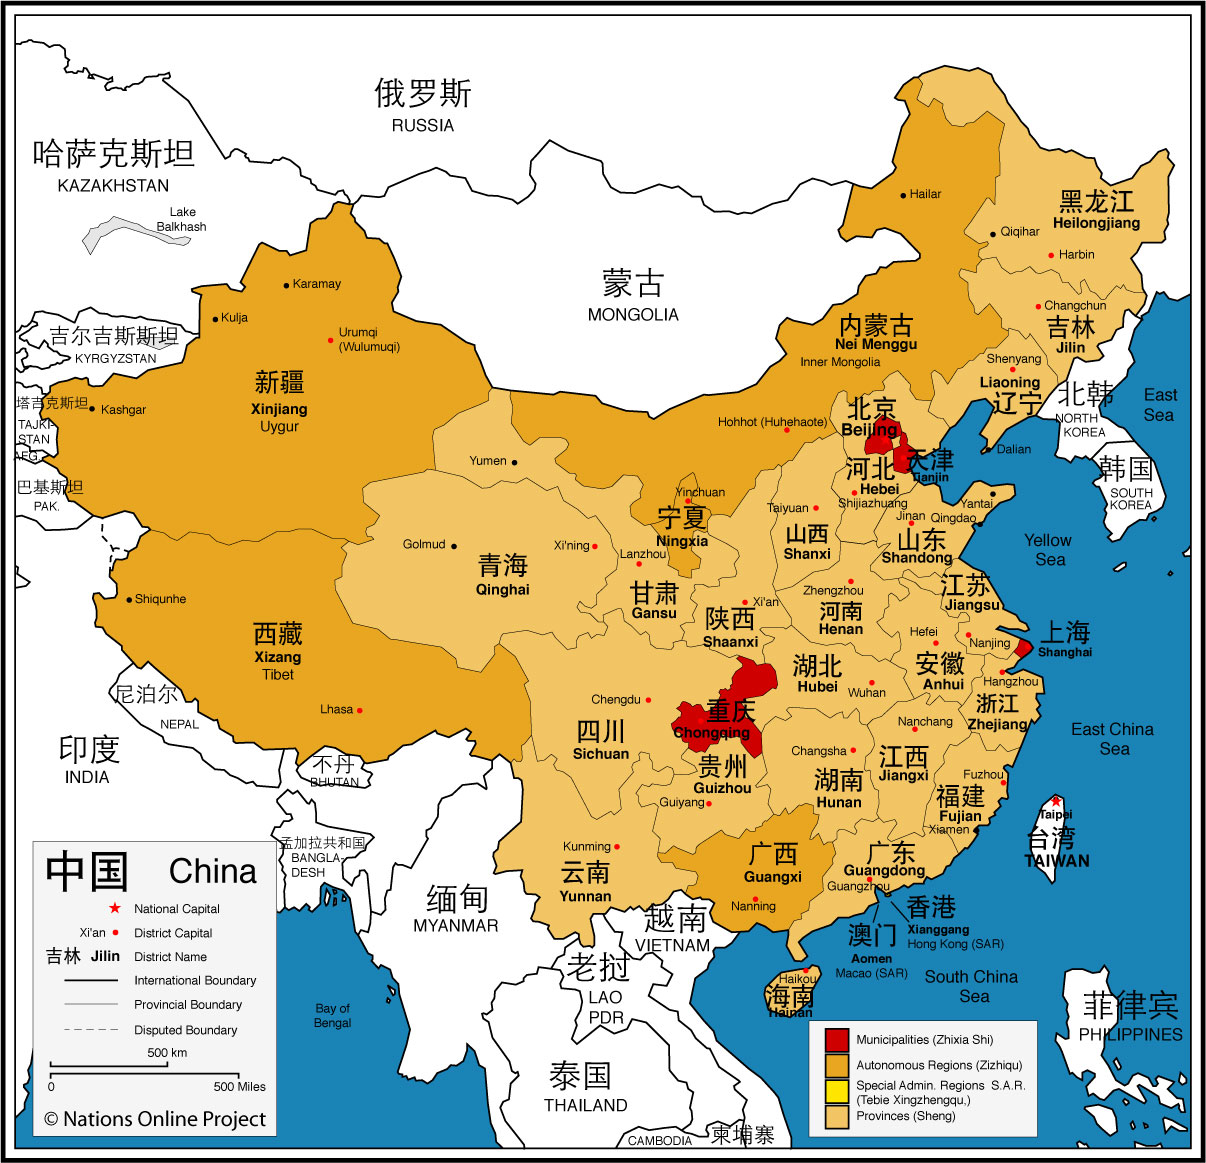 Administrative Map of China - Nations Online Project on